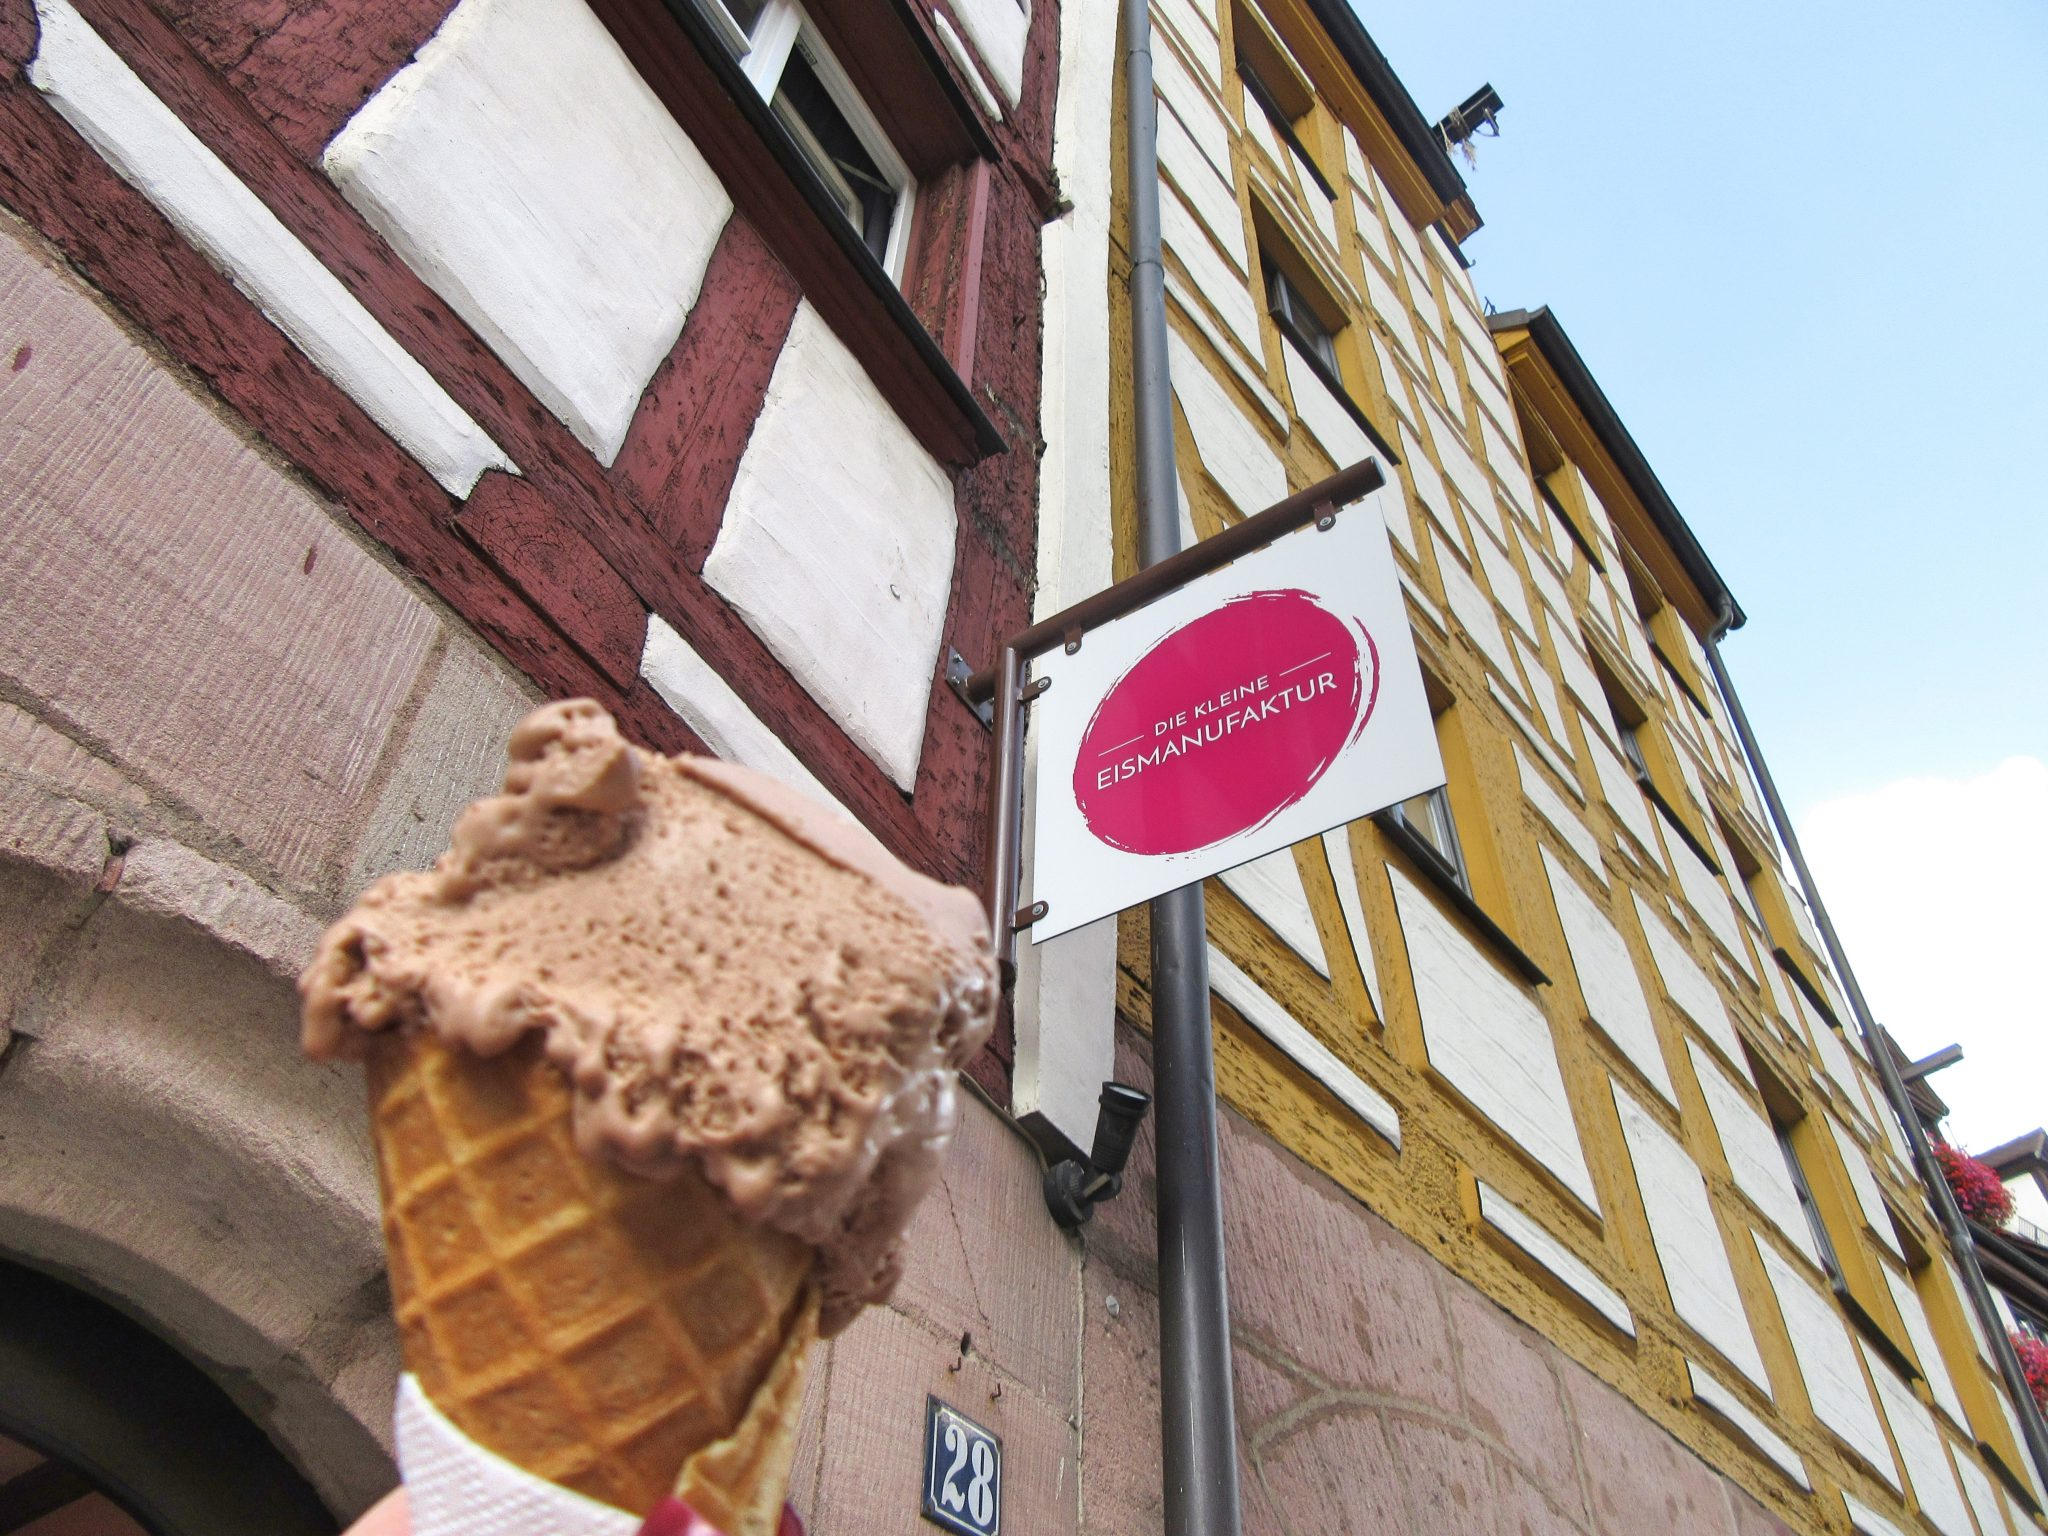 Ice cream in Nuremberg, Germany